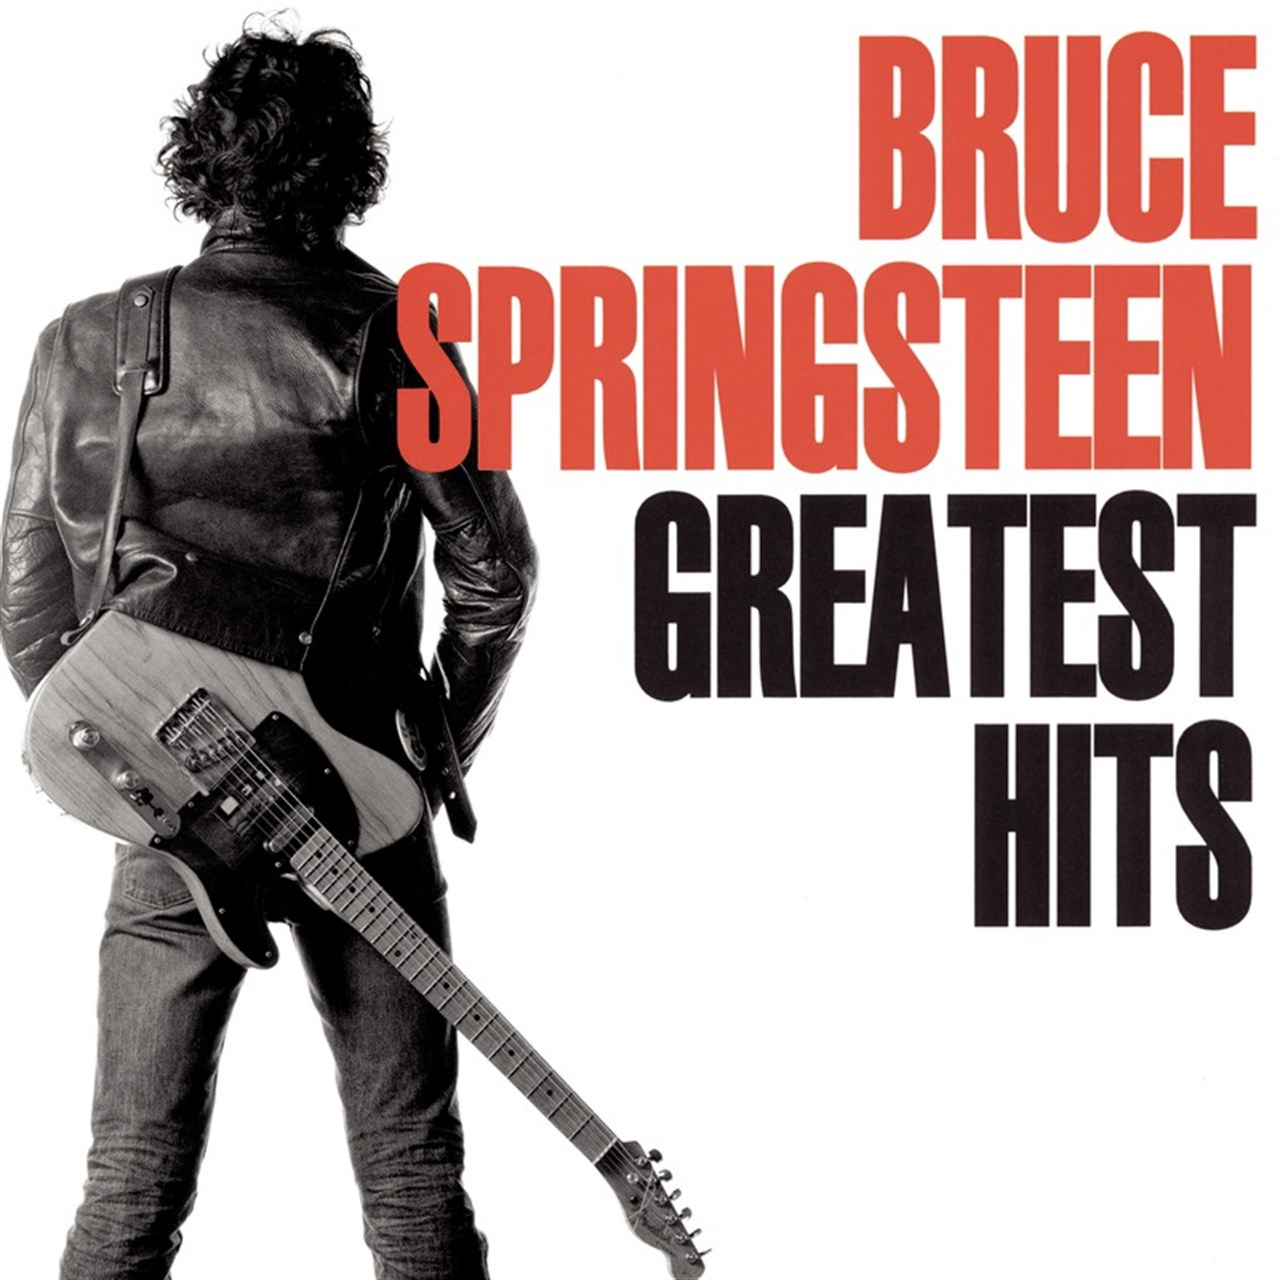 bruce springsteen bruce springsteen working on a dream 2 lp Bruce Springsteen Bruce Springsteen - Greatest Hits (2 Lp, Colour)